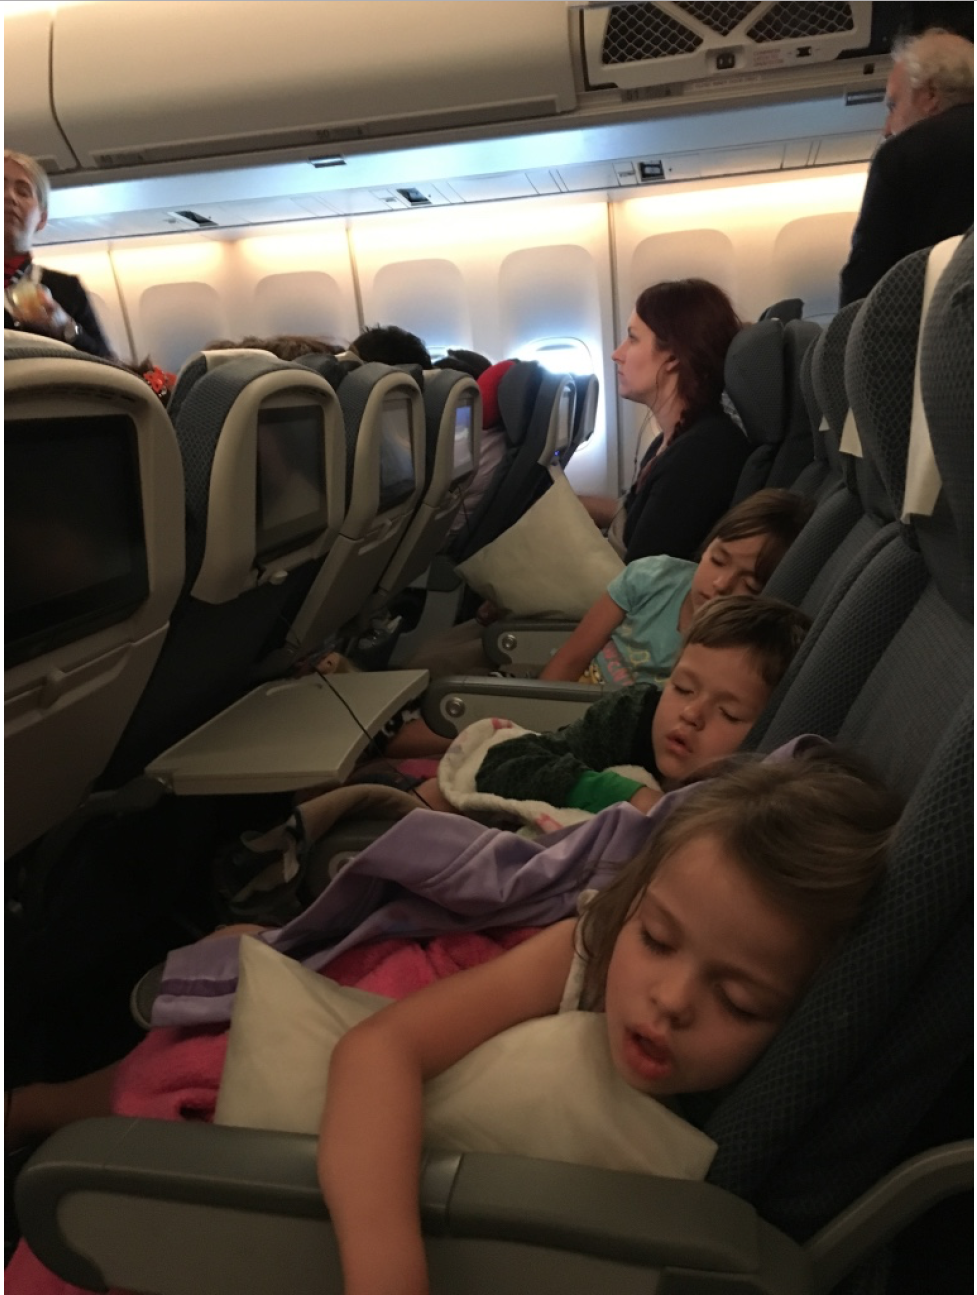 Thankfully the kids slept for a good portion of the flight over the Atlantic.  Unfortunately, on the first night they were all up and playing loudly at 1:30am during our first night.